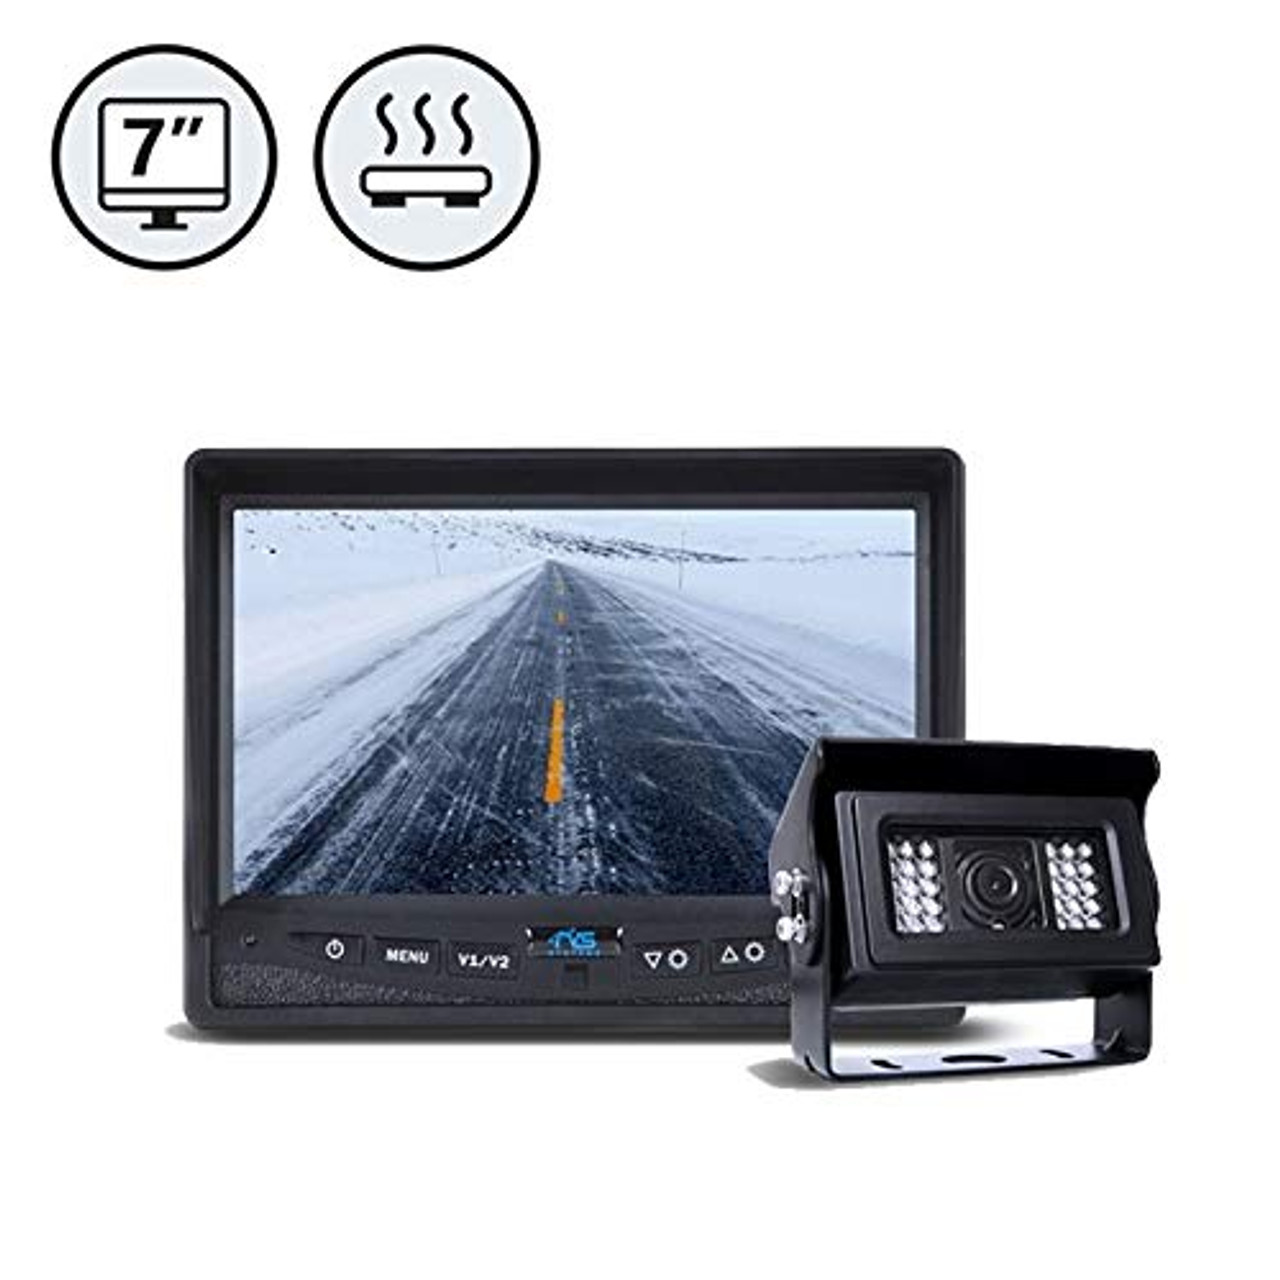 """7"""" Display, 1 x Heated Backup Camera, 1 x 66' Cable 